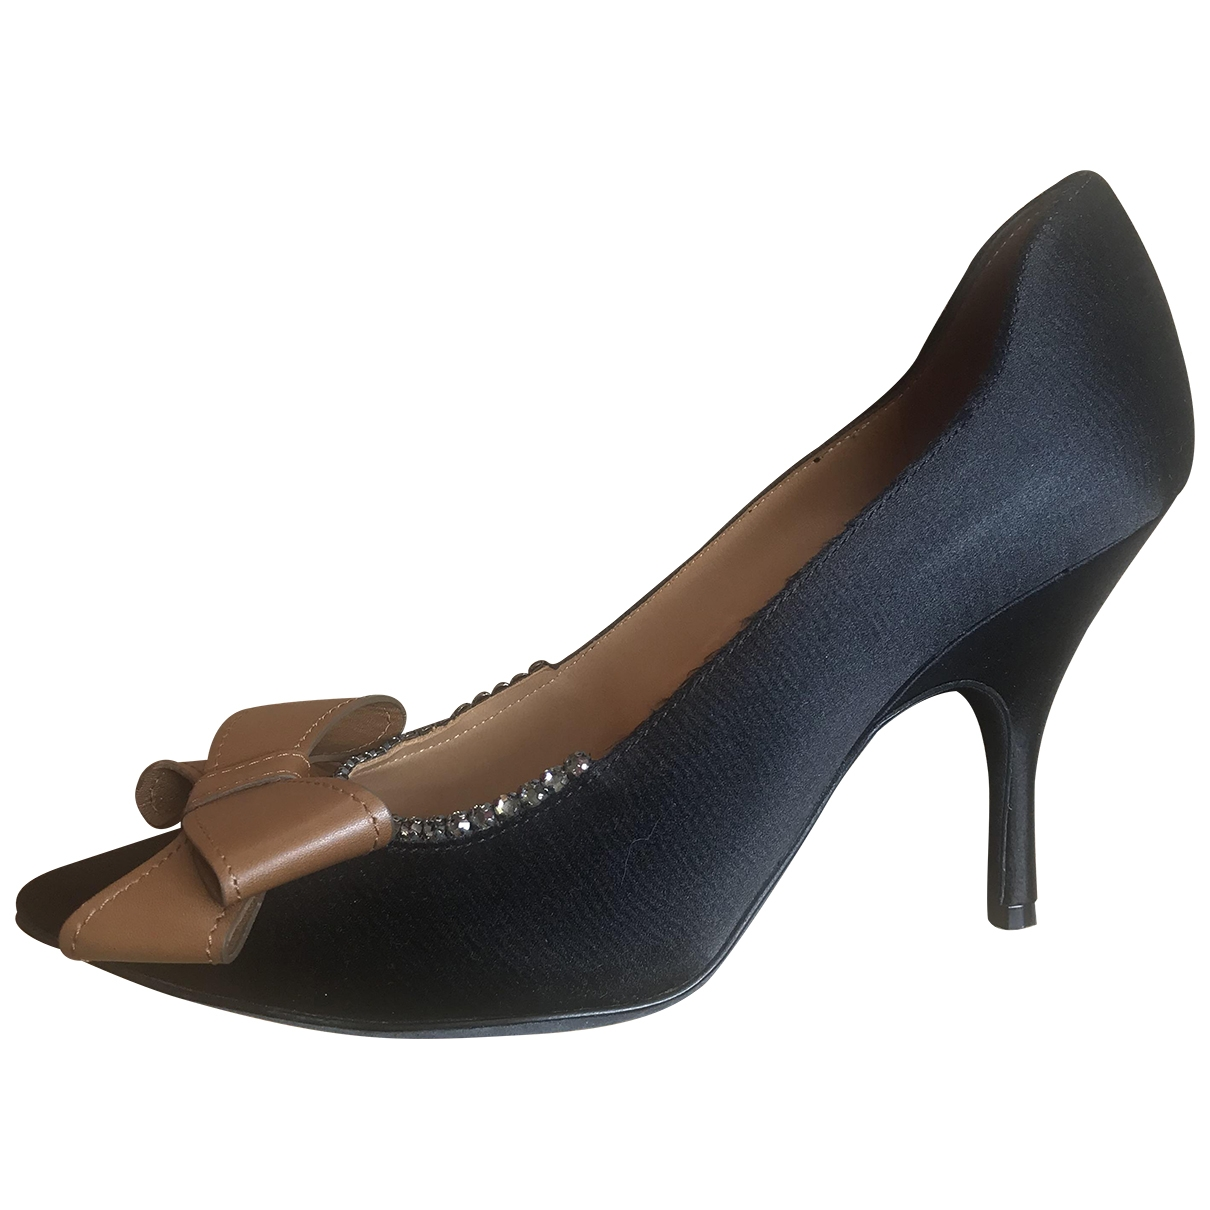 Lanvin \N Black Cloth Heels for Women 38 EU